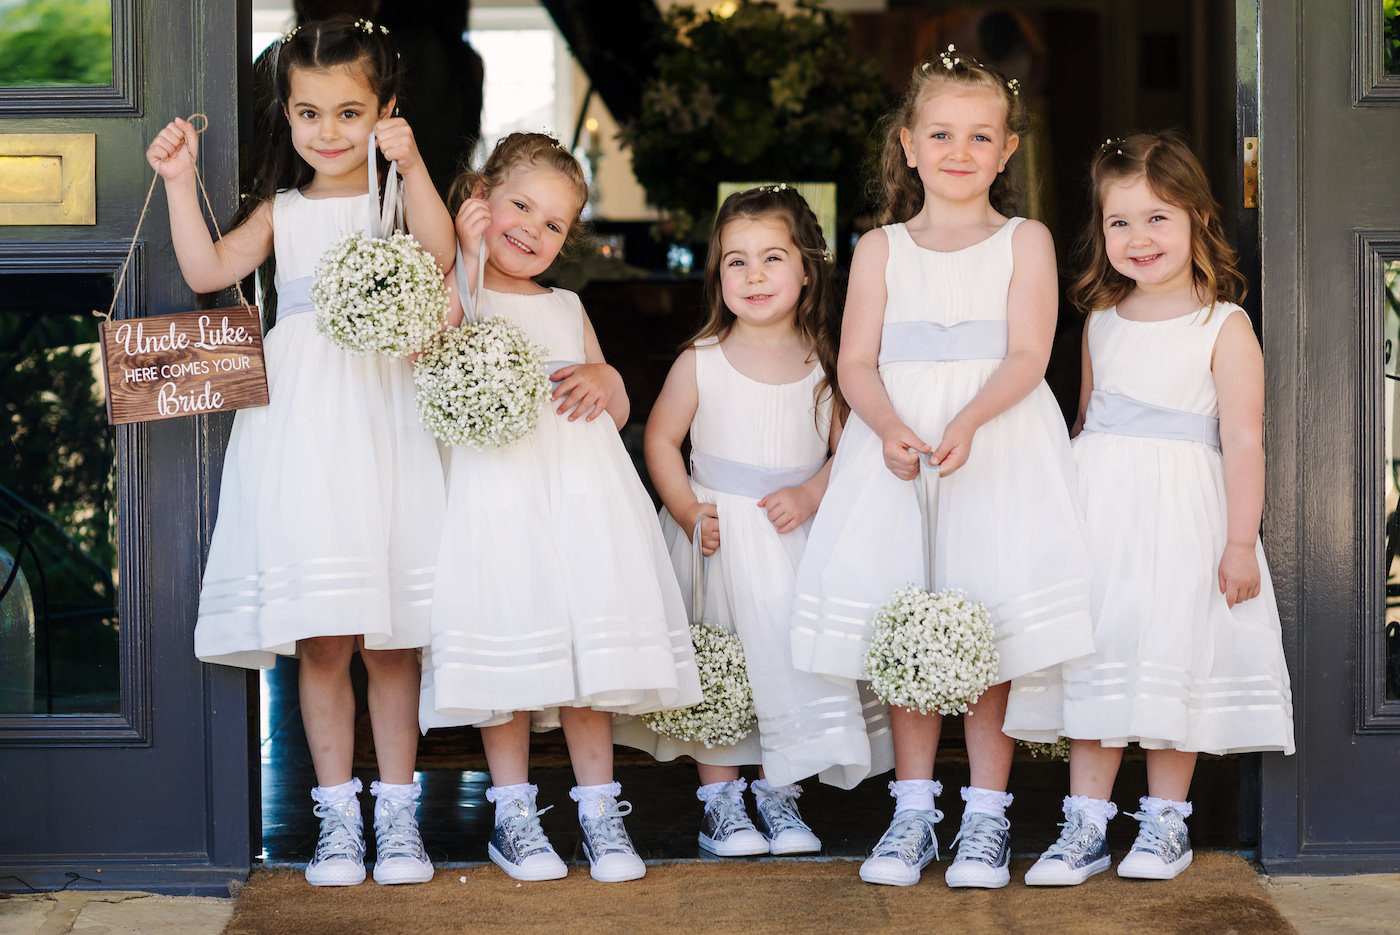 Five flower girls in white dresses holding white baby breath gypsophila pomanders